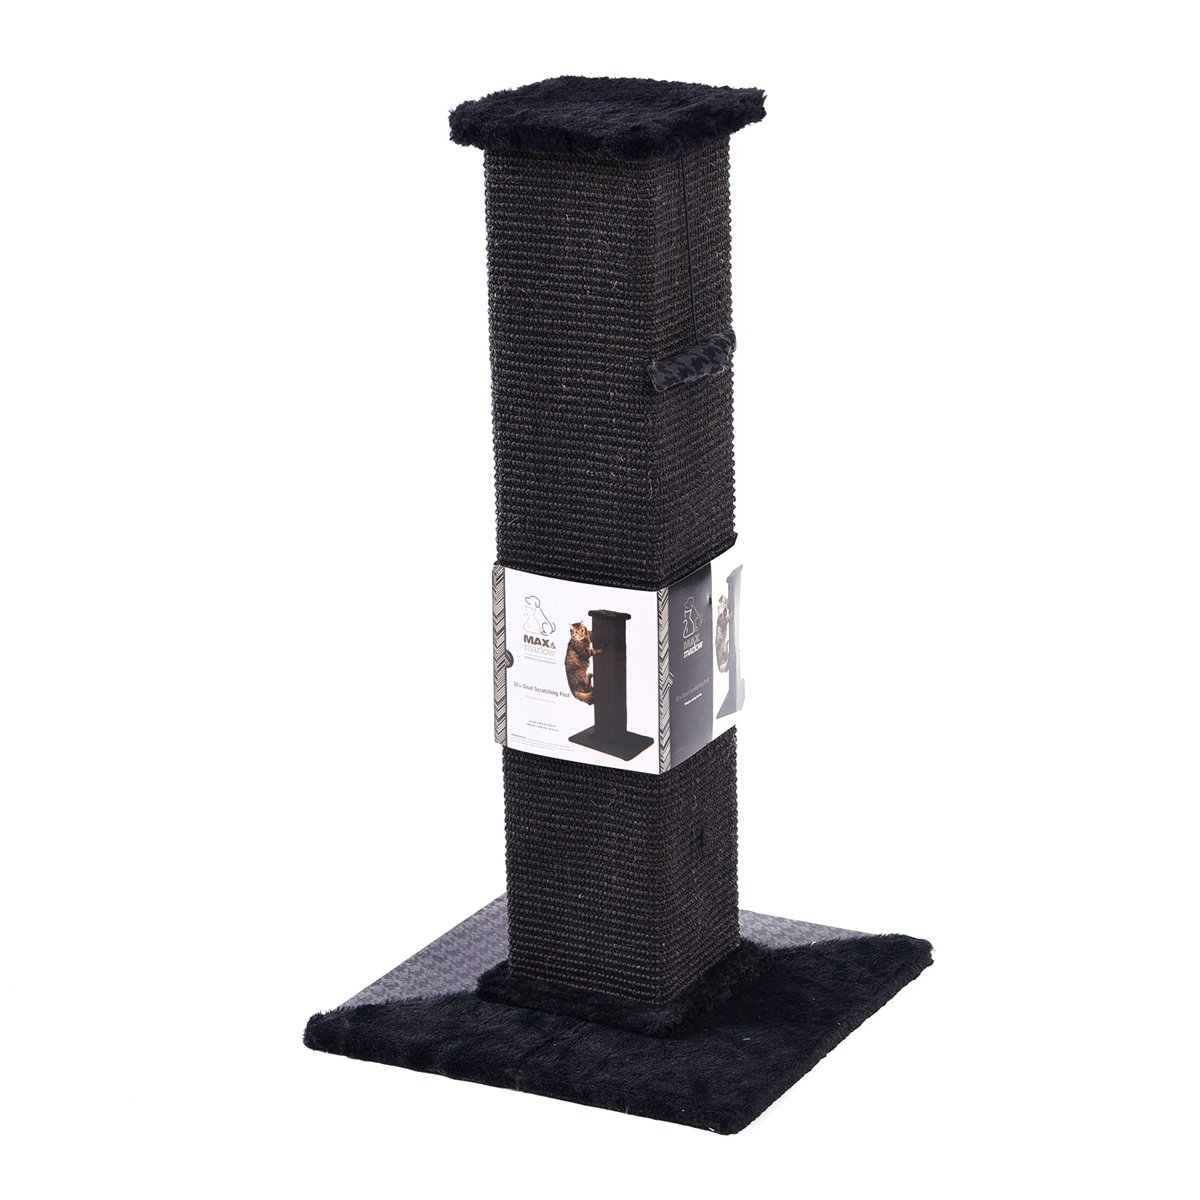 PAWZ Road 32'' Cats Ultimate Scratching Post by PAWZ Road